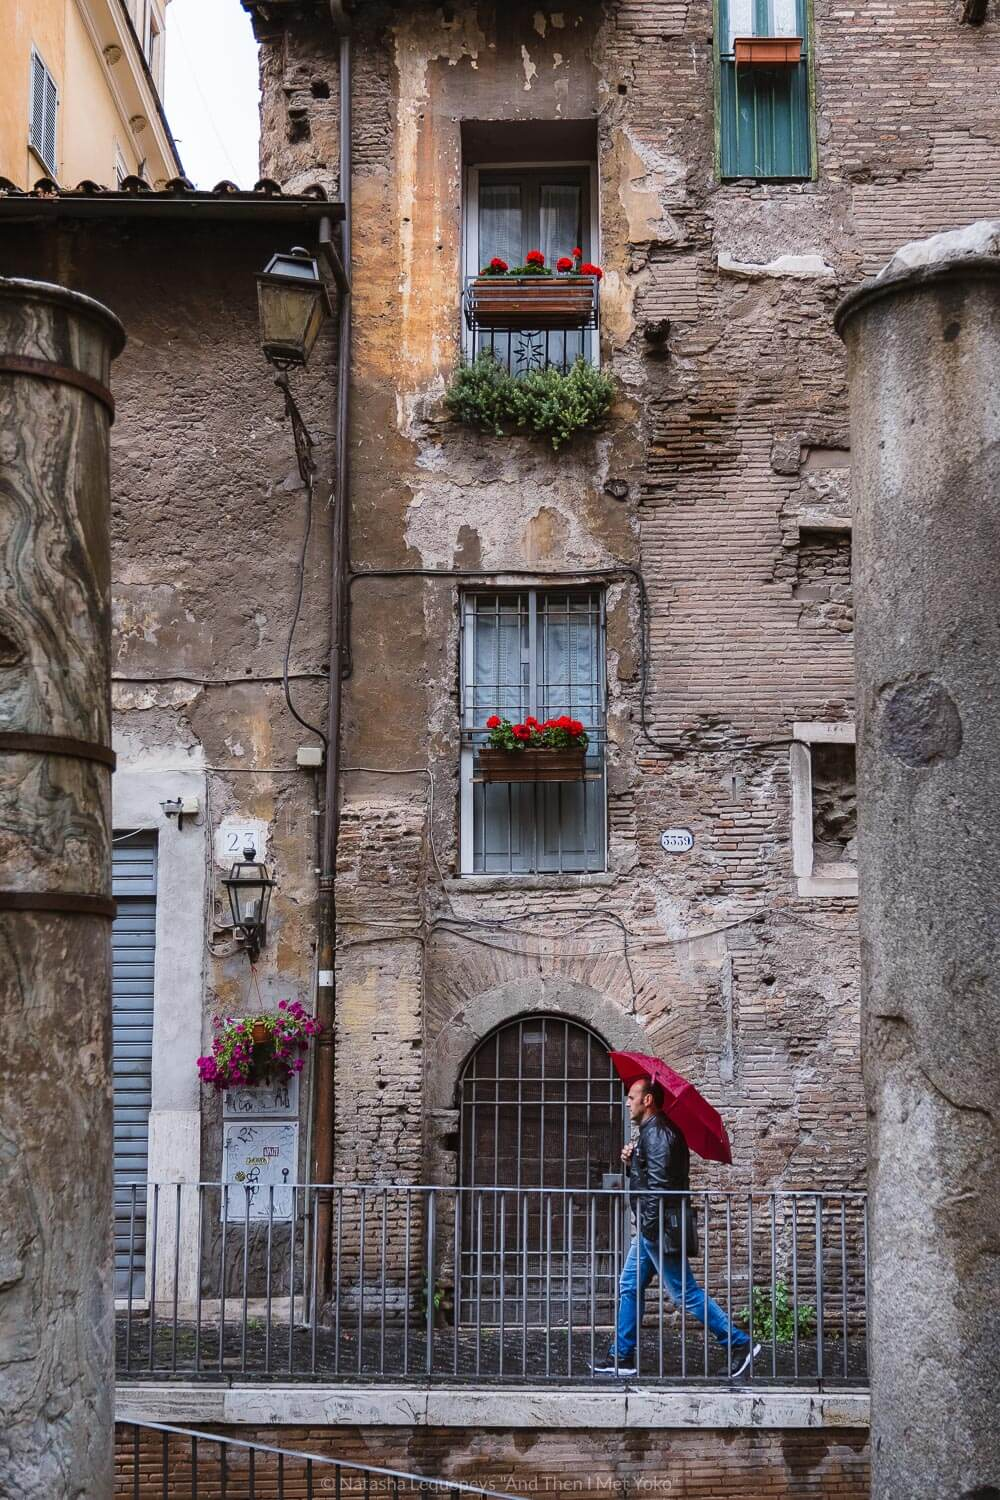 """Original housing in the Jewish Ghetto, Rome. Travel photography and guide by © Natasha Lequepeys for """"And Then I Met Yoko"""". #rome #jewishghettorome #italy #fujifilm #travelphotography"""